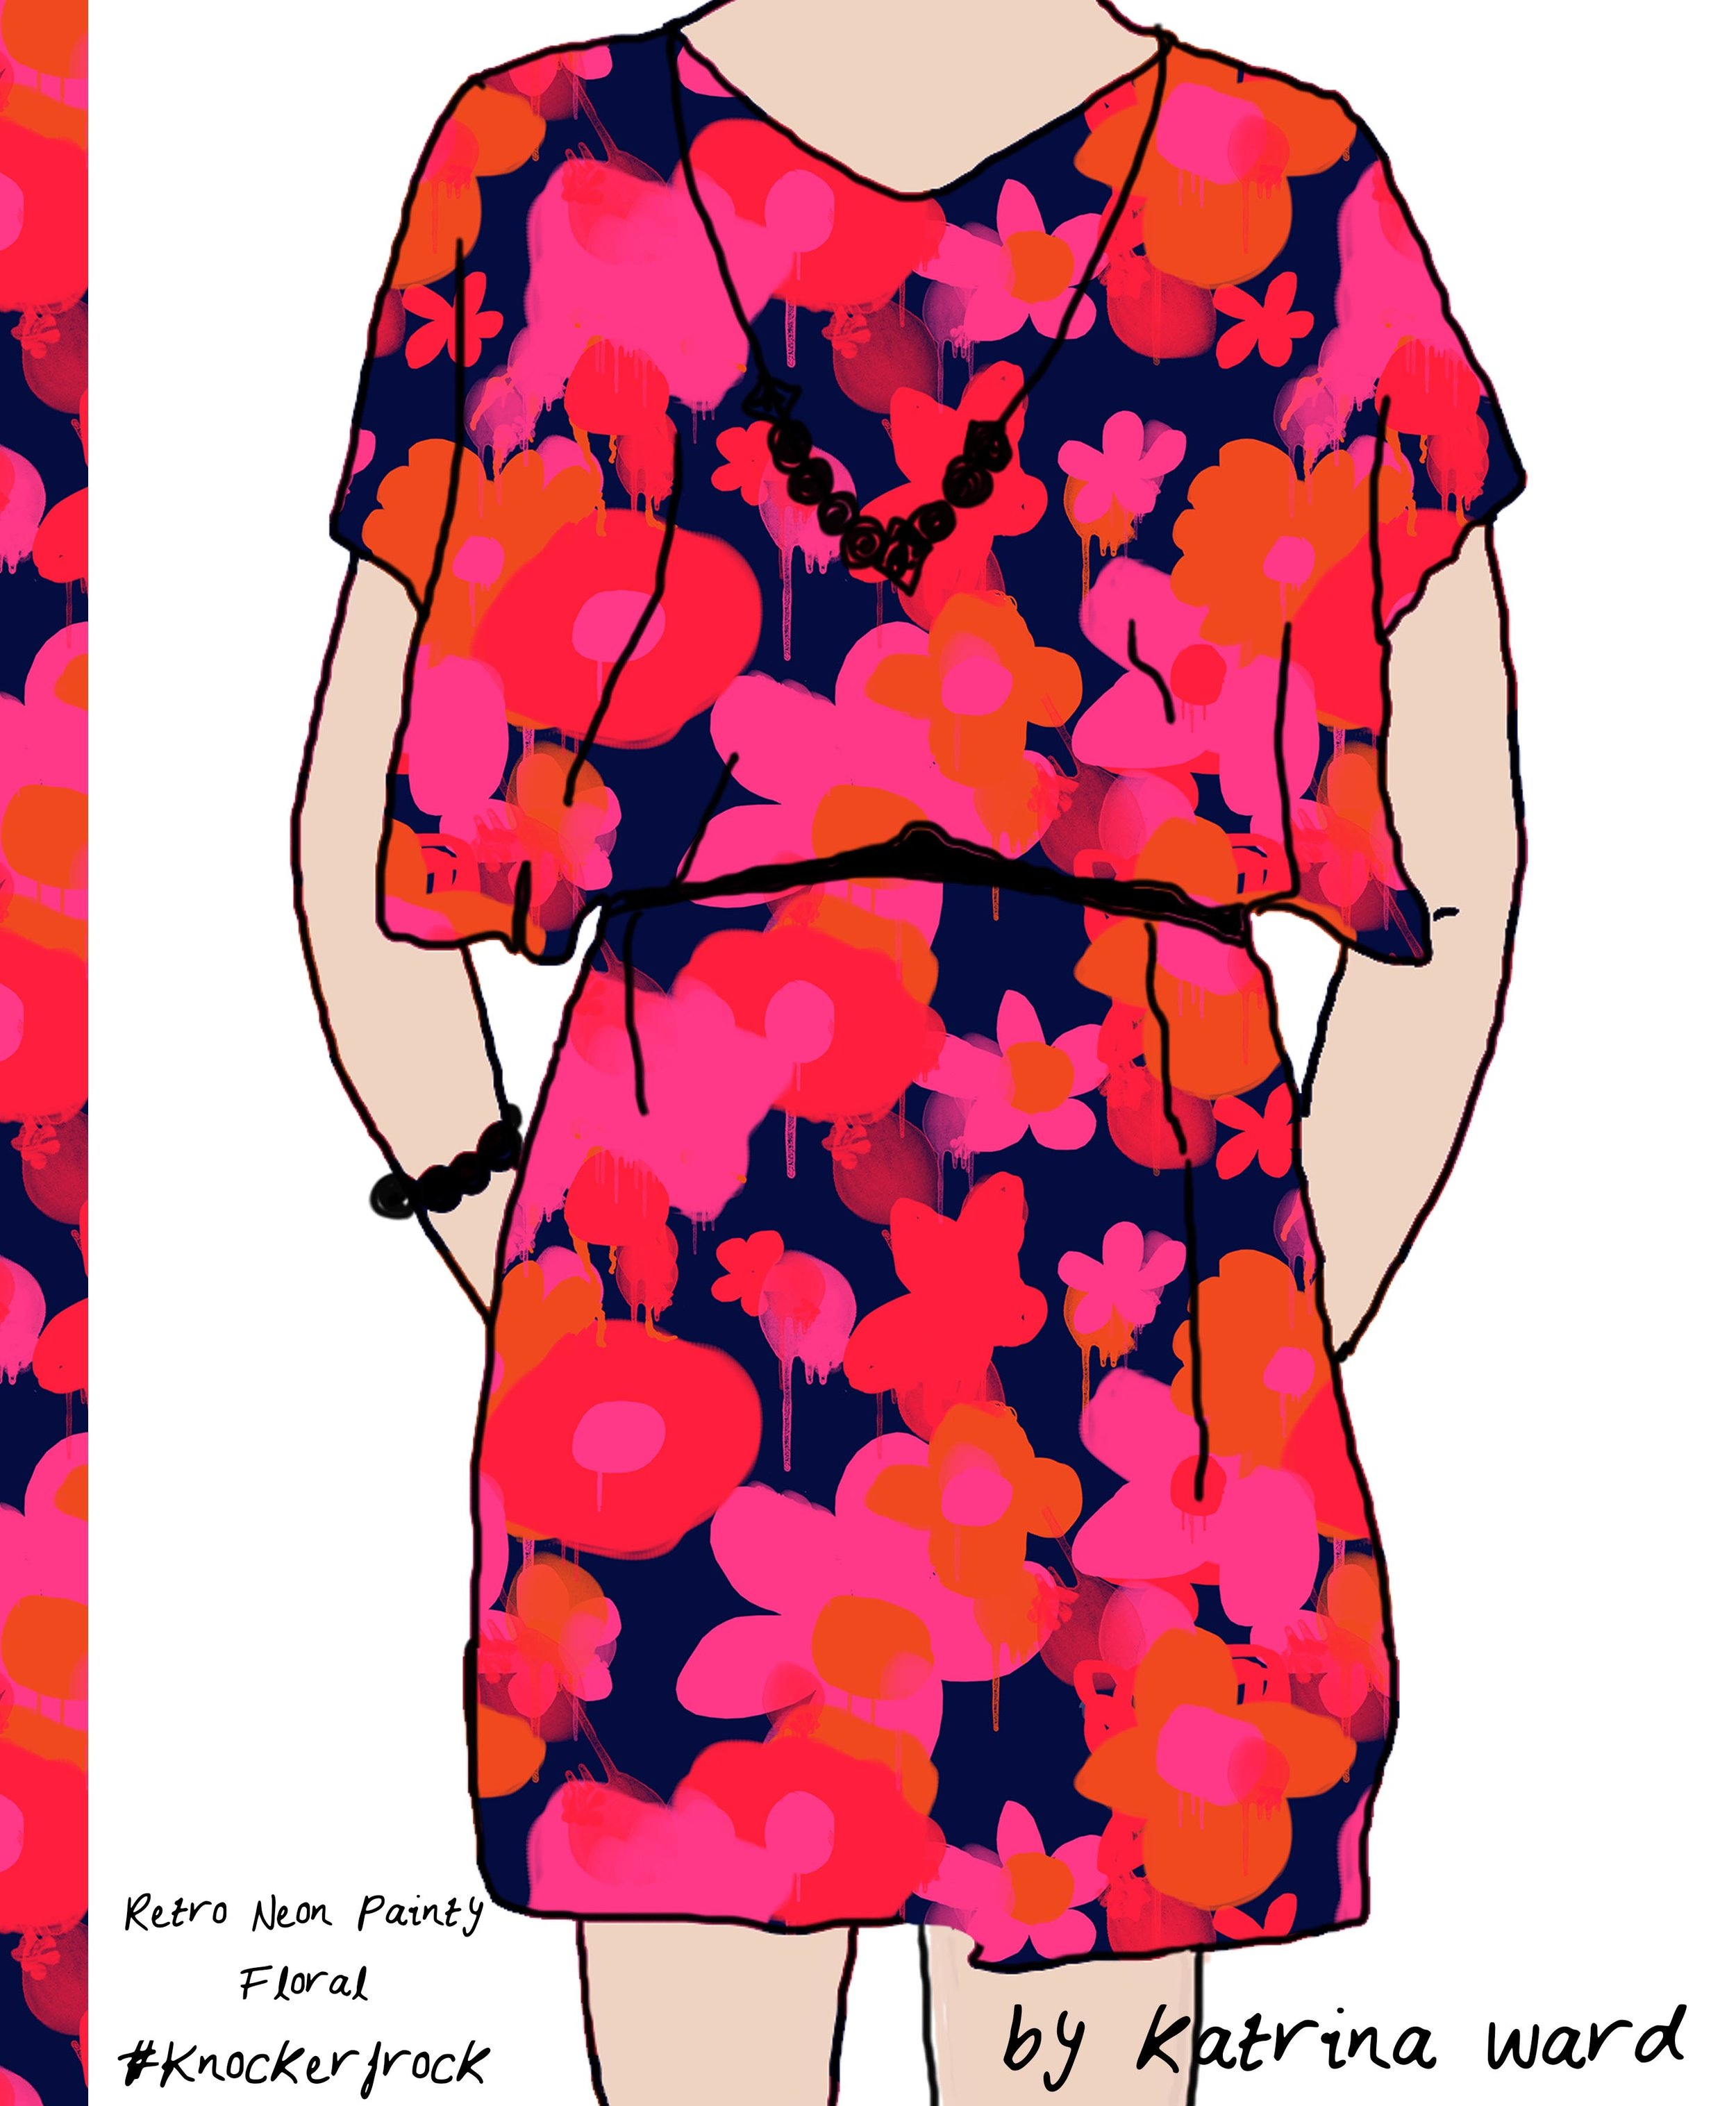 retro neon painty floral knockerfrock.jpg